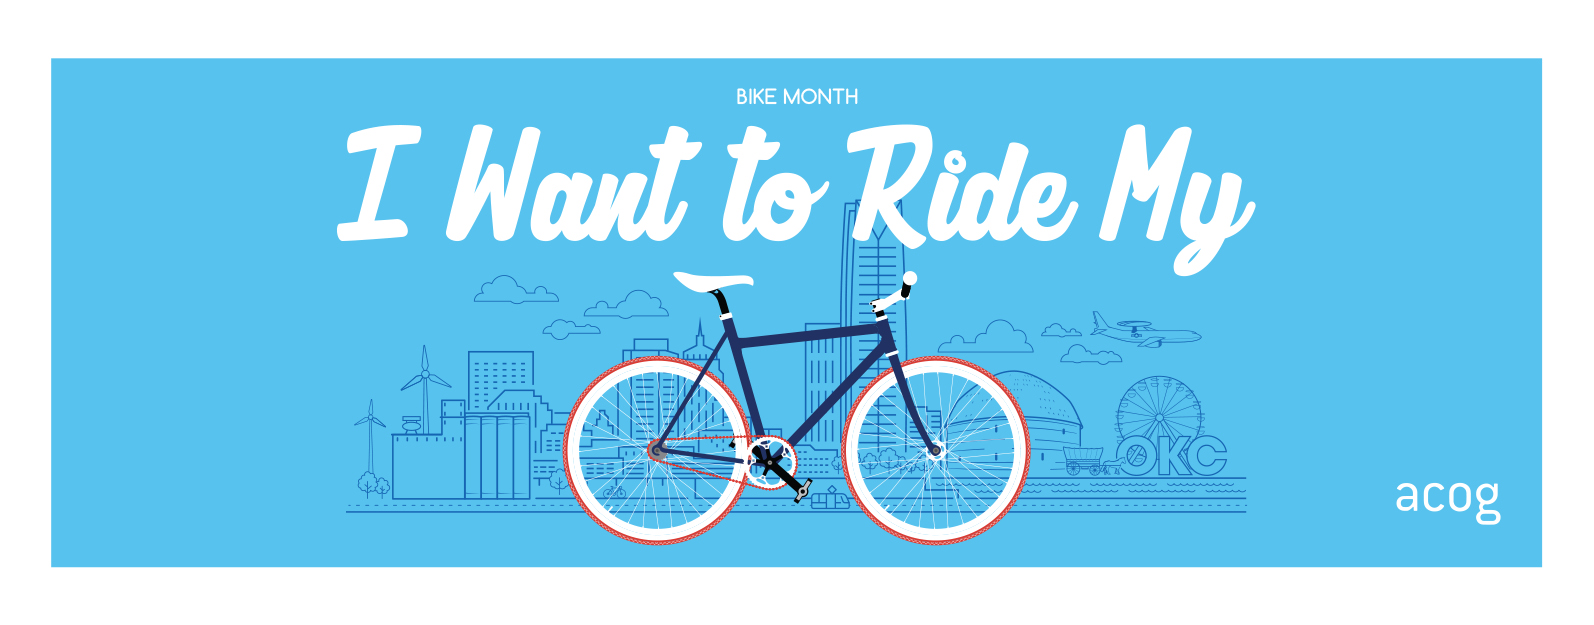 Central Oklahoma Celebrates Bike Month 2019 with Scheduled